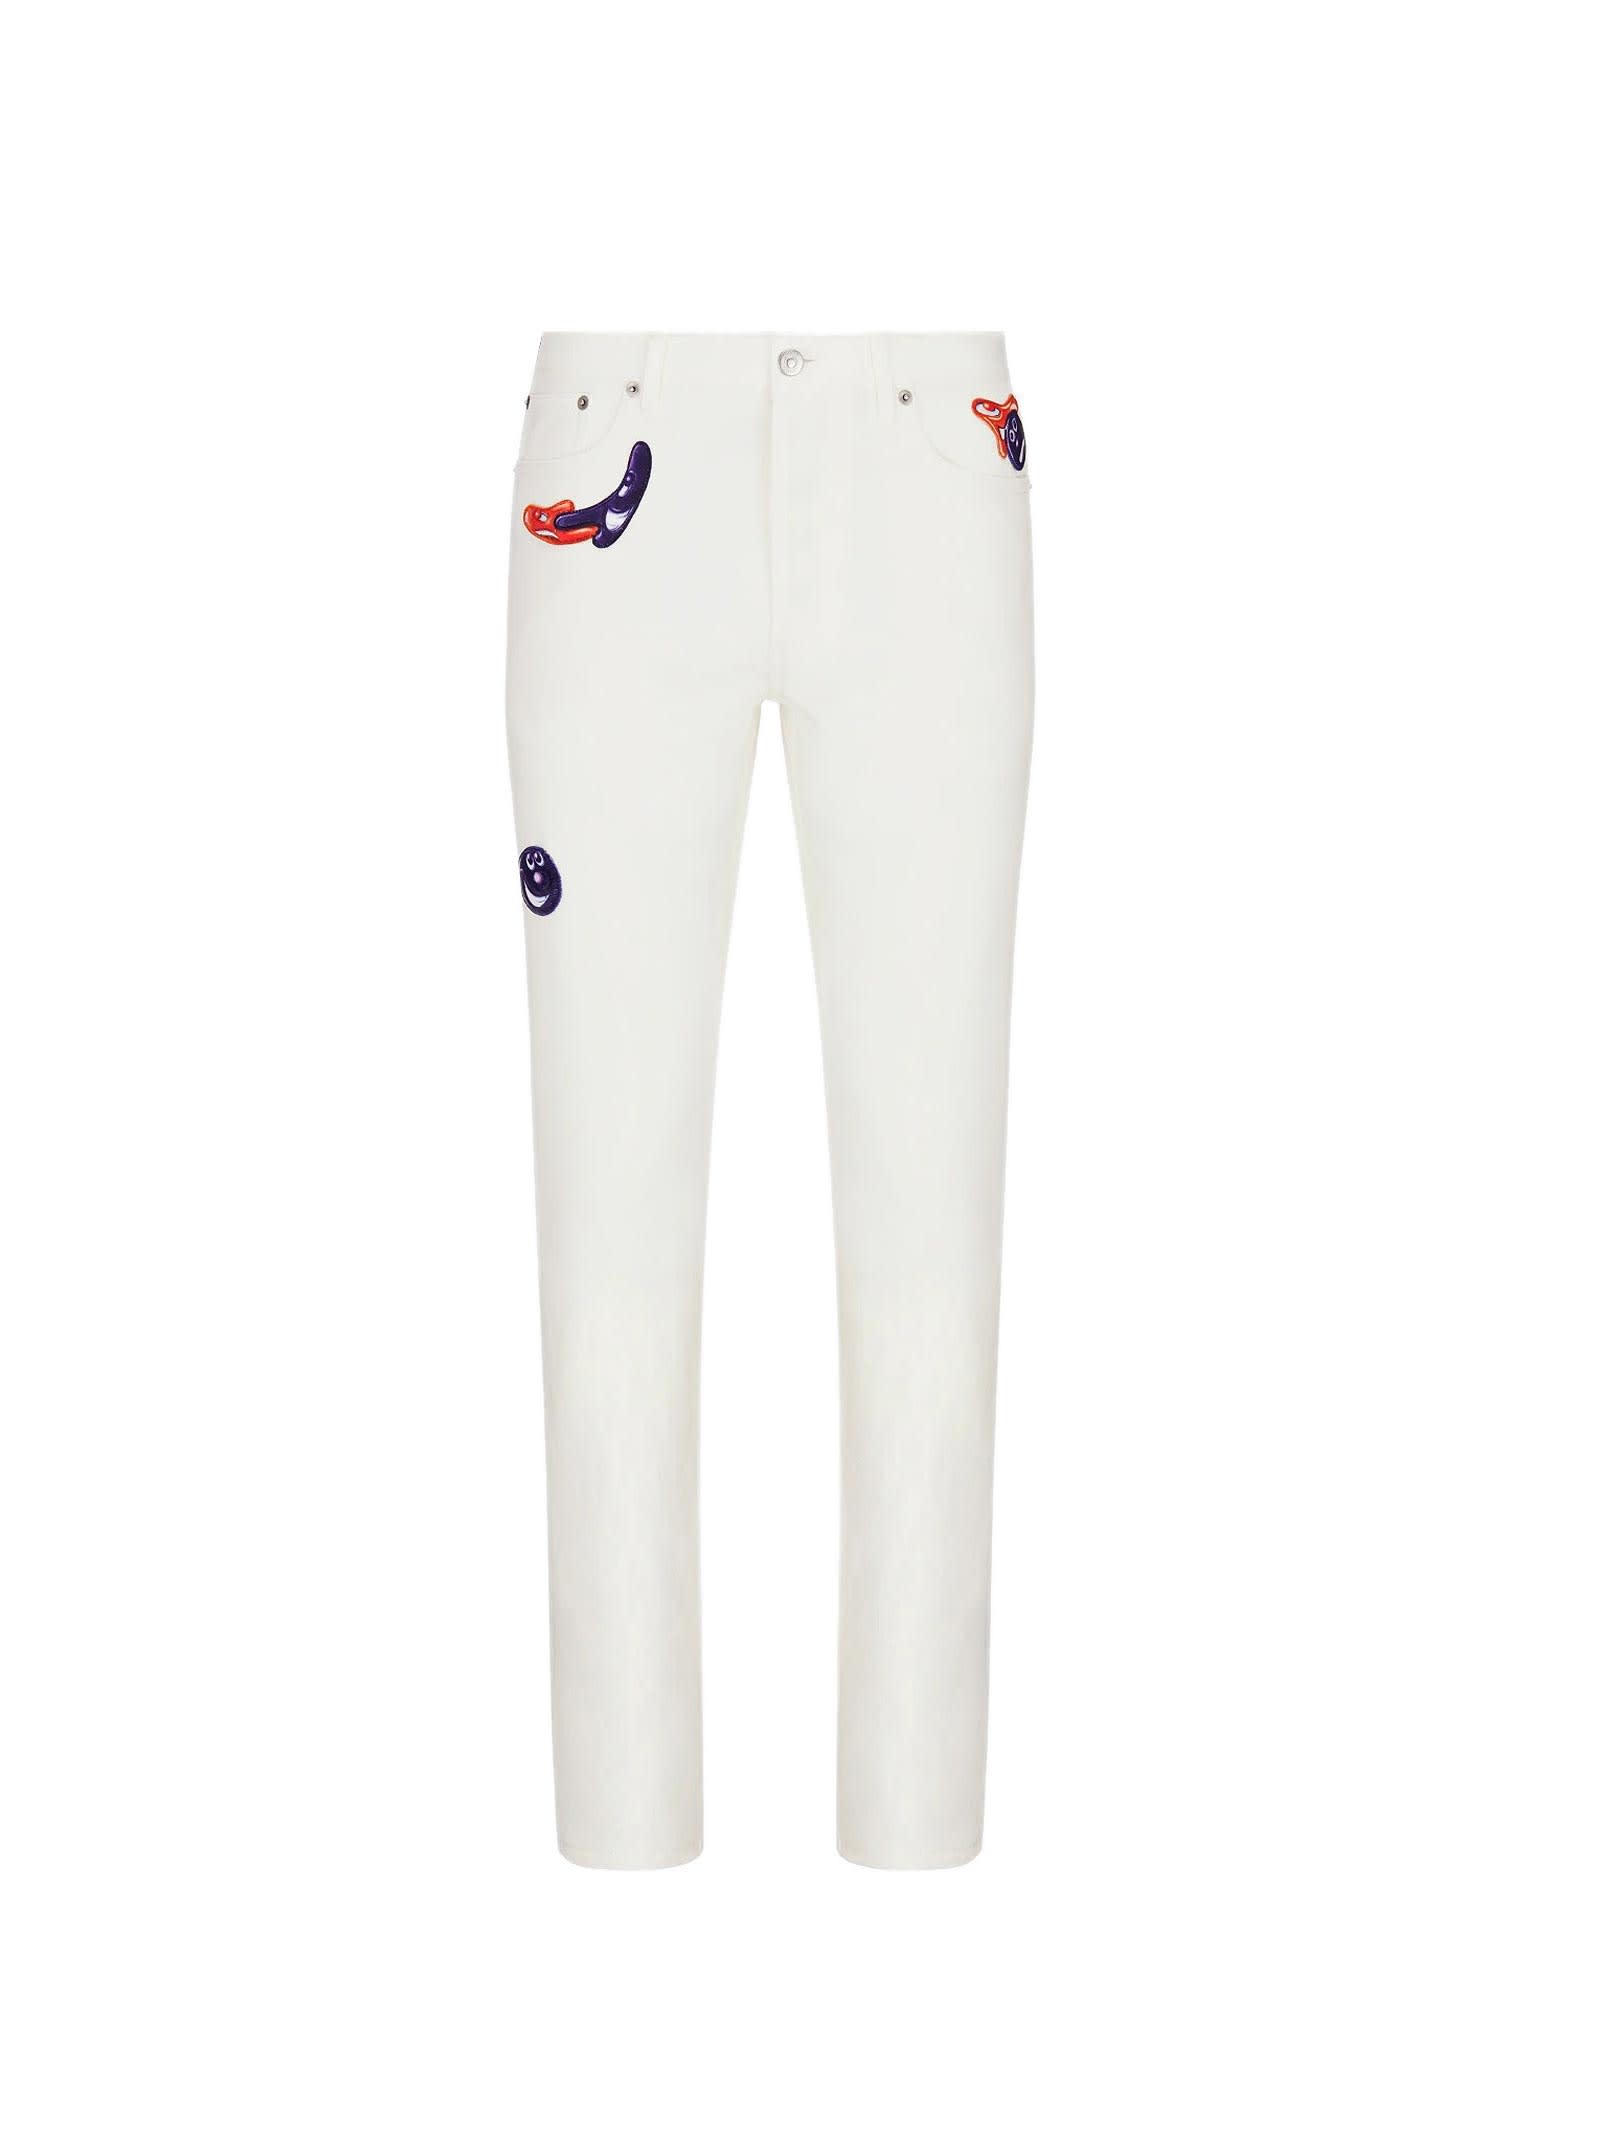 Jeans In White Cotton